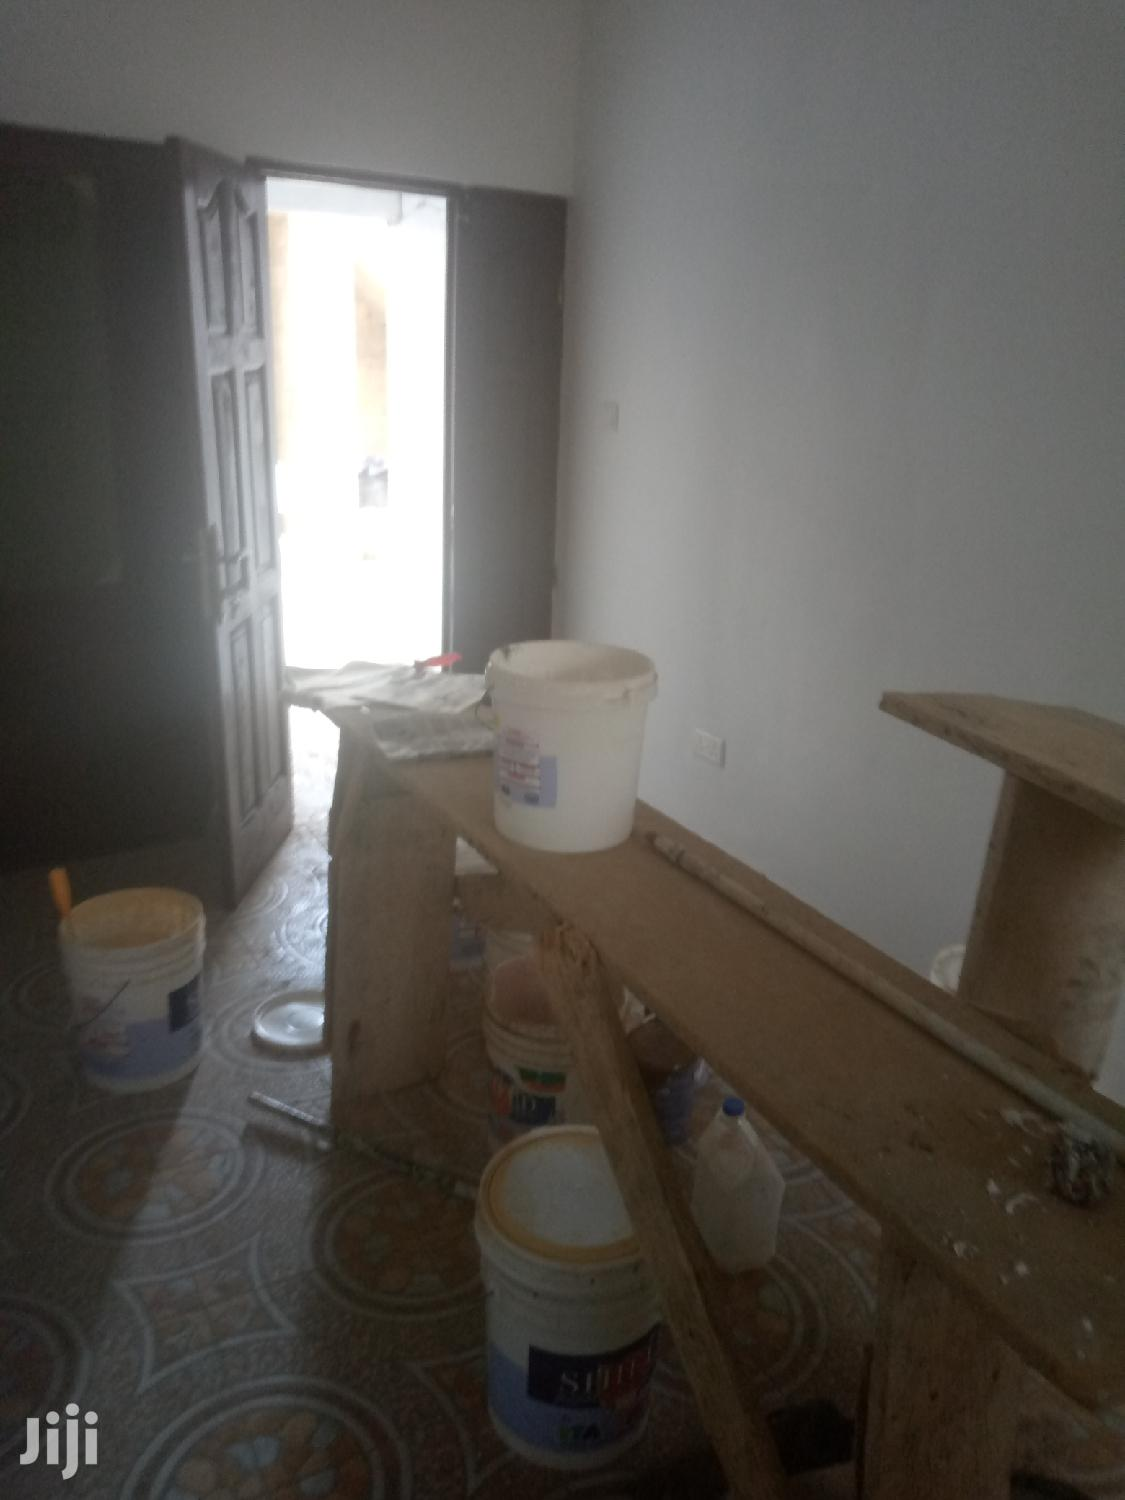 House for Rent   Houses & Apartments For Rent for sale in New Town, Teshie, Ghana